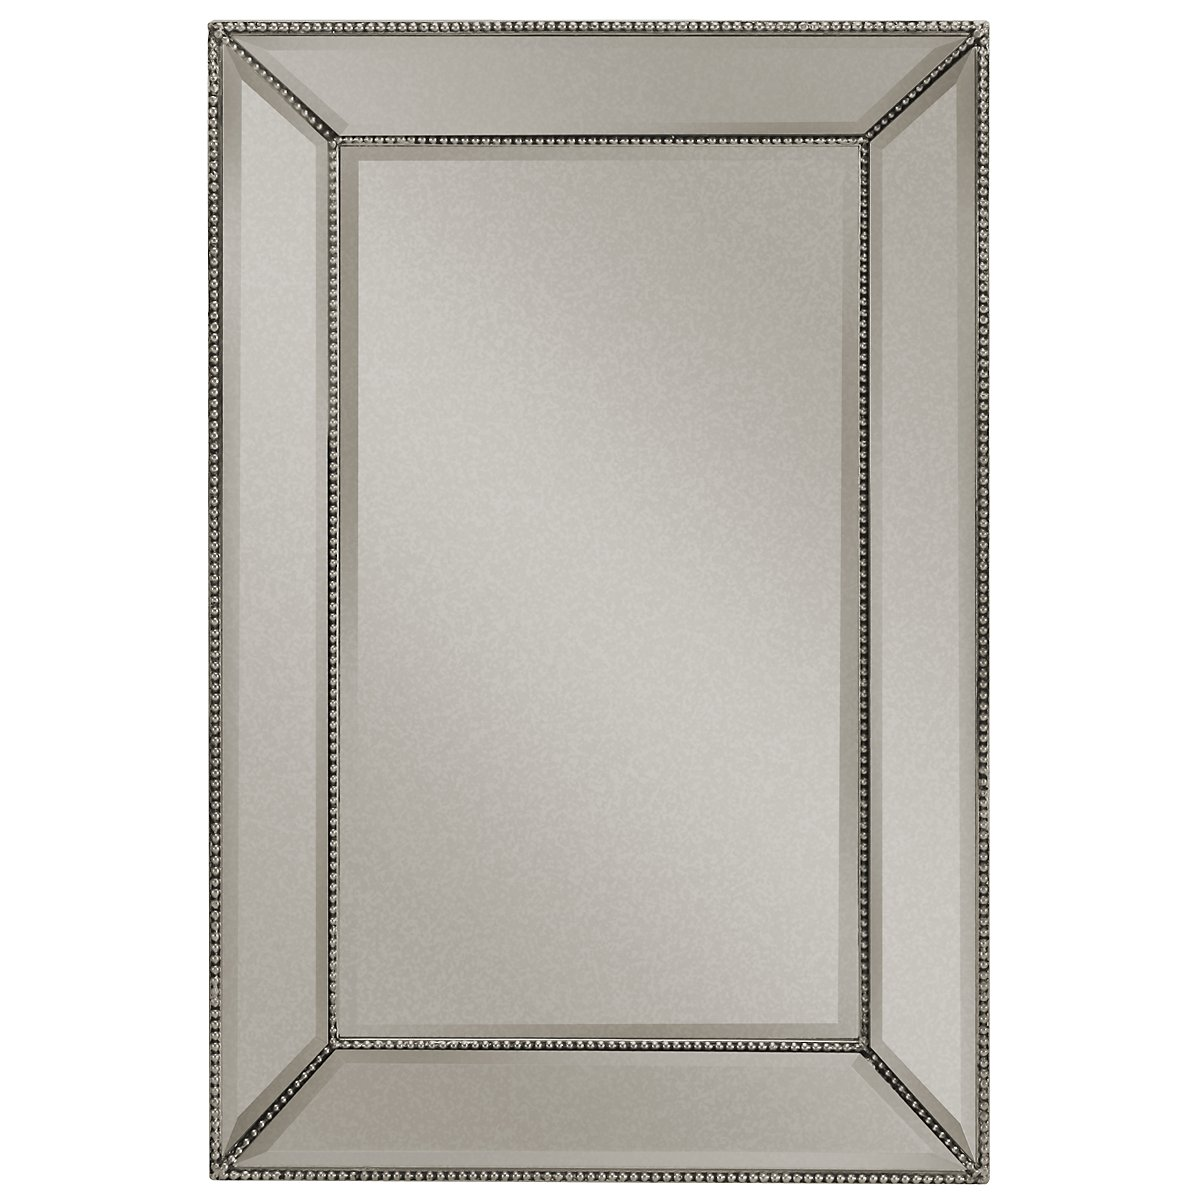 City furniture adiva silver small mirror for Small silver mirror